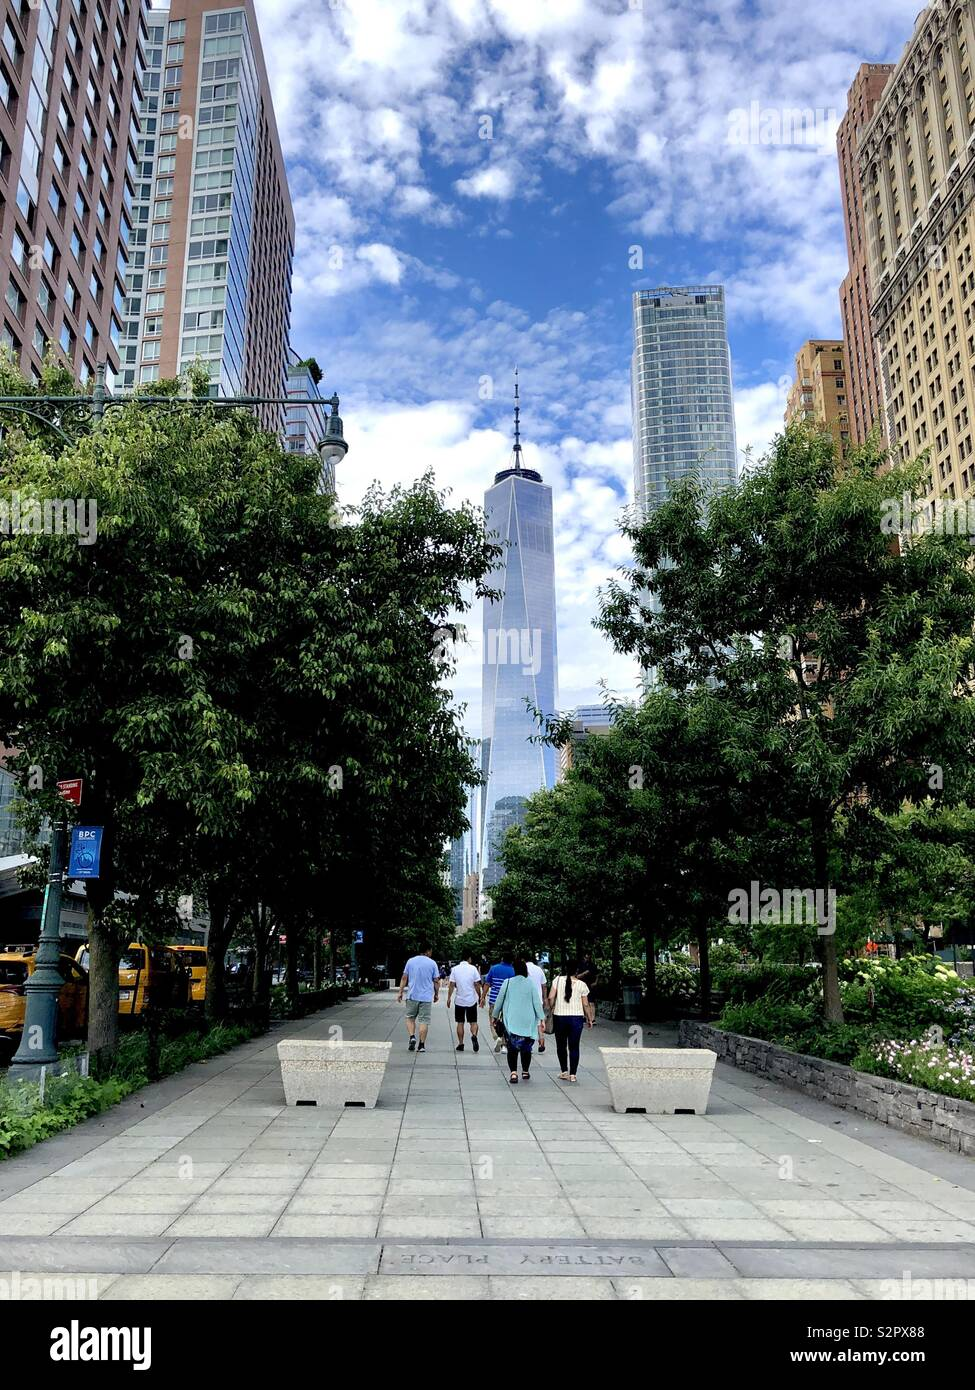 Freedom Tower New York City with people - Stock Image